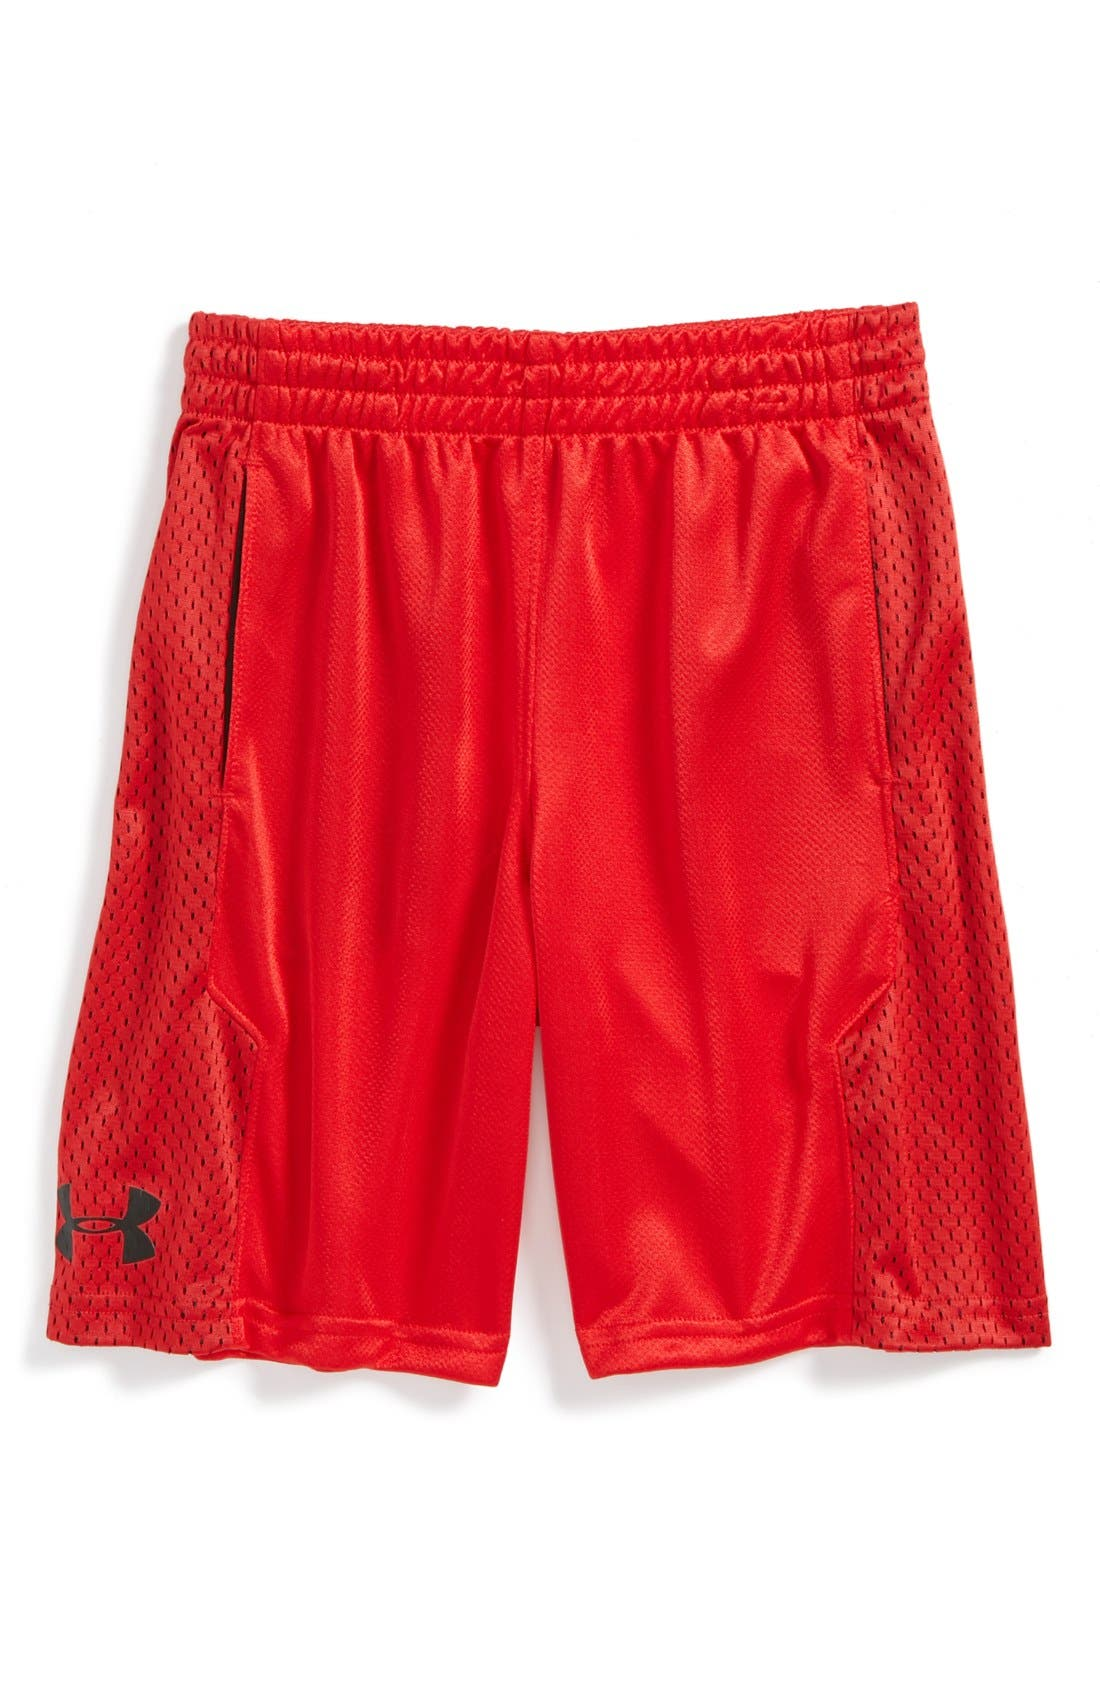 Alternate Image 1 Selected - Under Armour 'Awesomeness' HeatGear® Shorts (Little Boys)